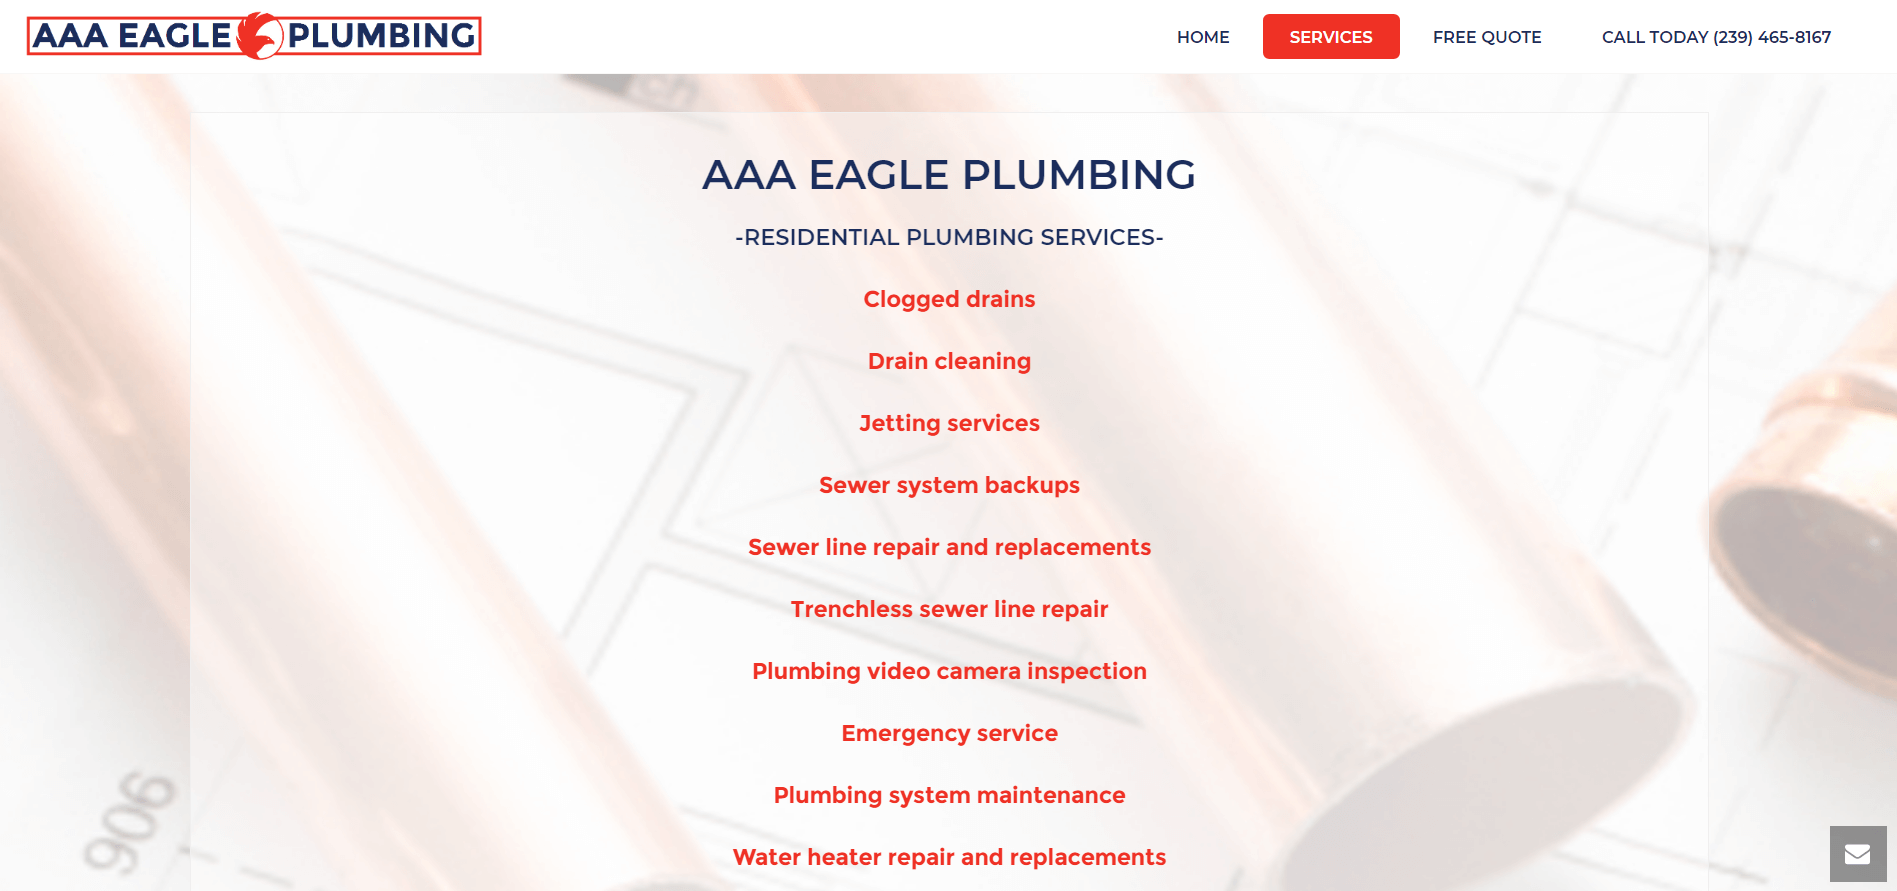 aaa eagle plumbing services page